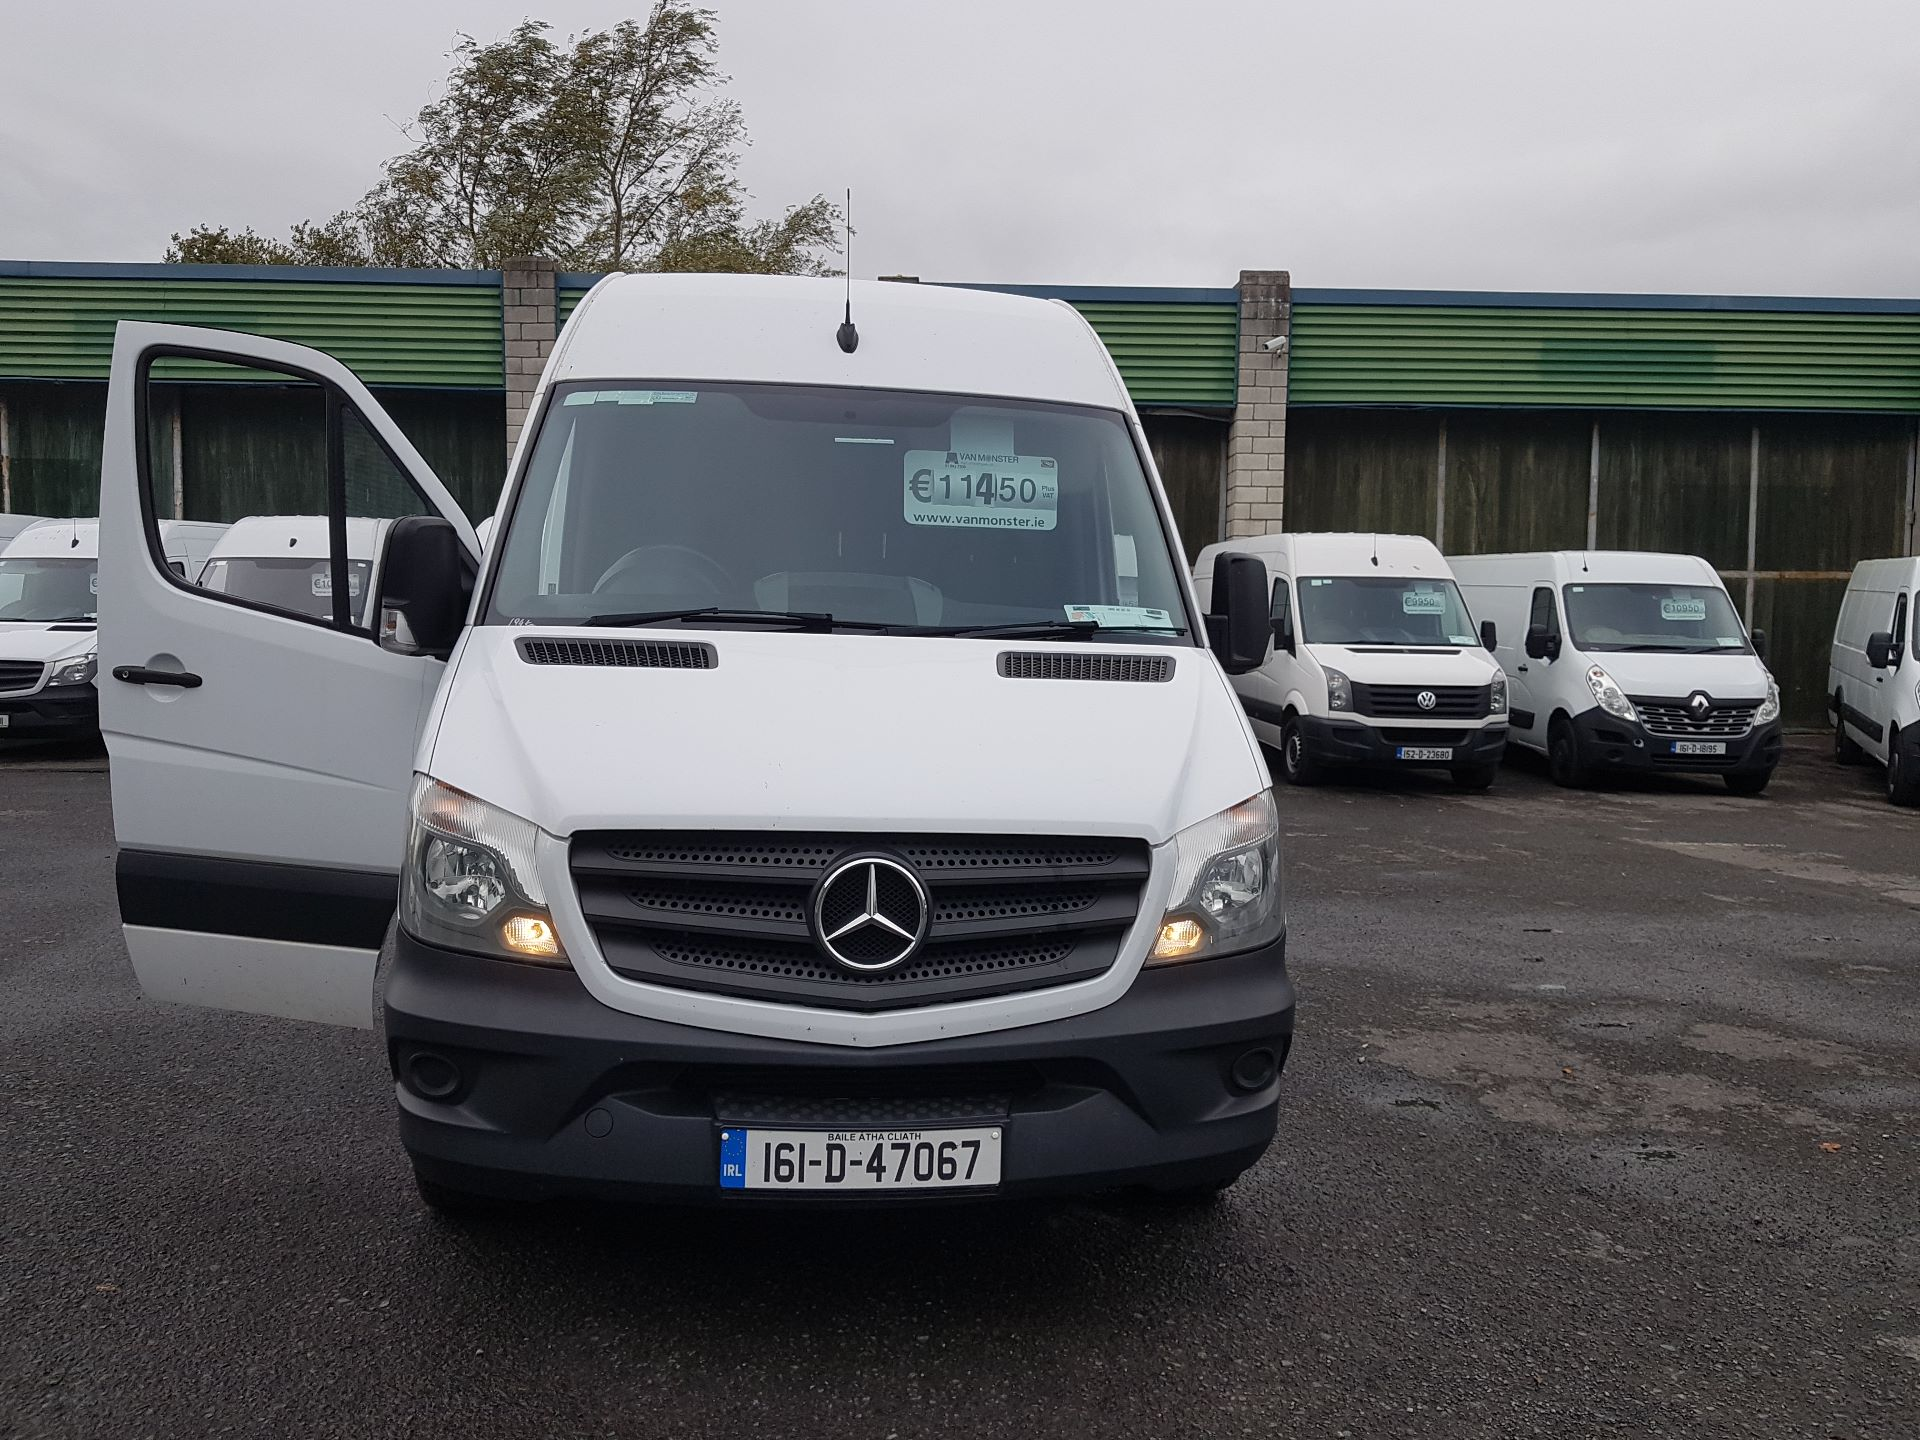 2016 Mercedes-Benz Sprinter 313/43 CDI 5DR (161D47067)